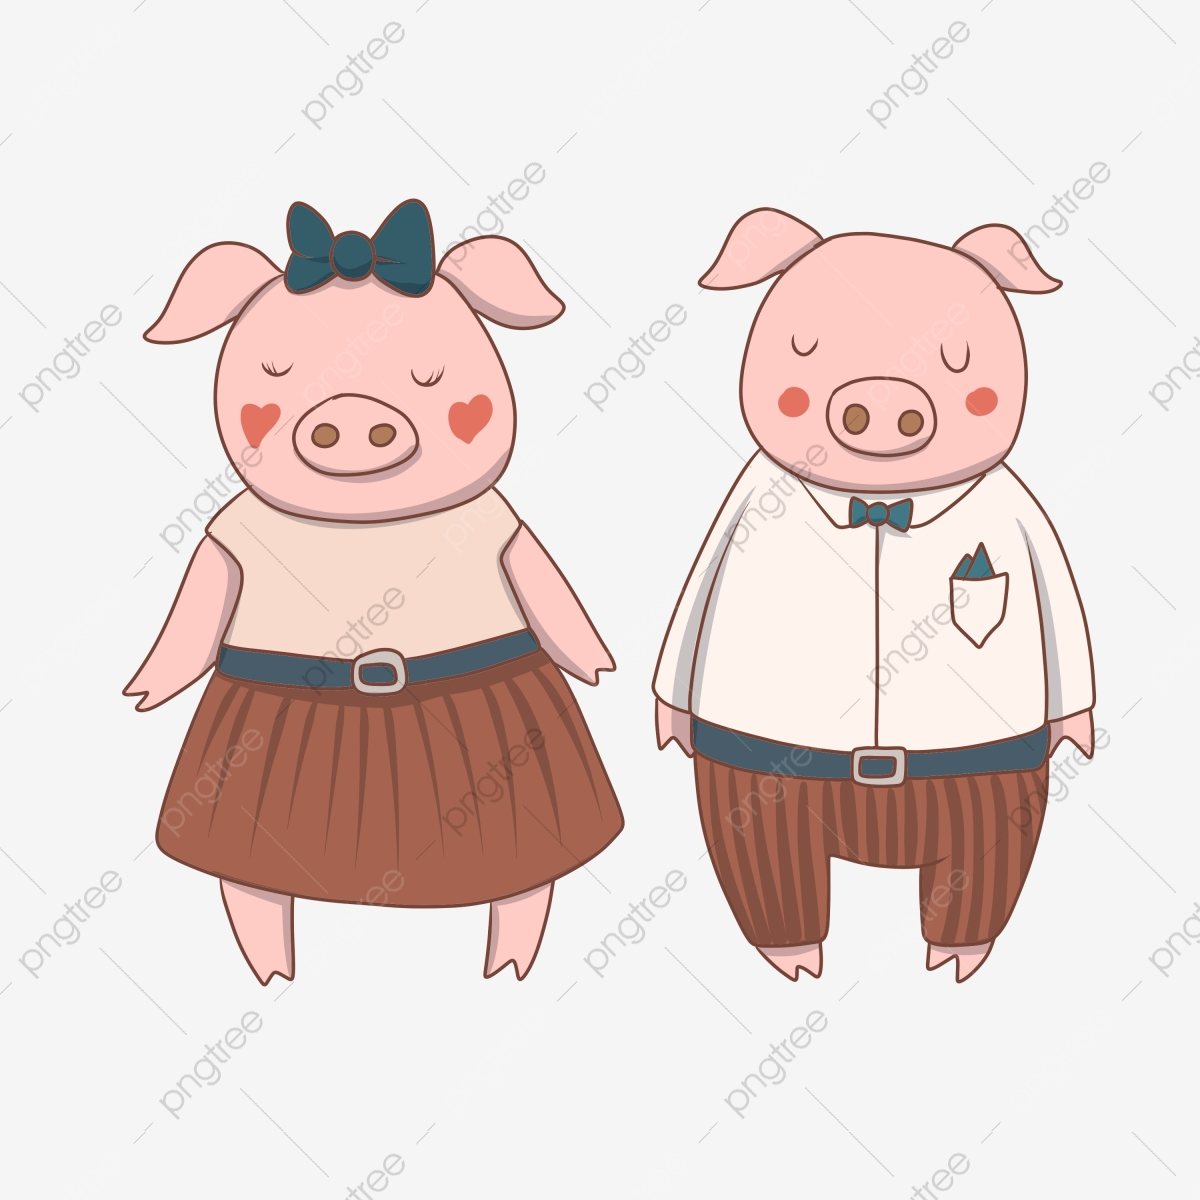 Cartoon hand drawn illustration. Pig clipart couple